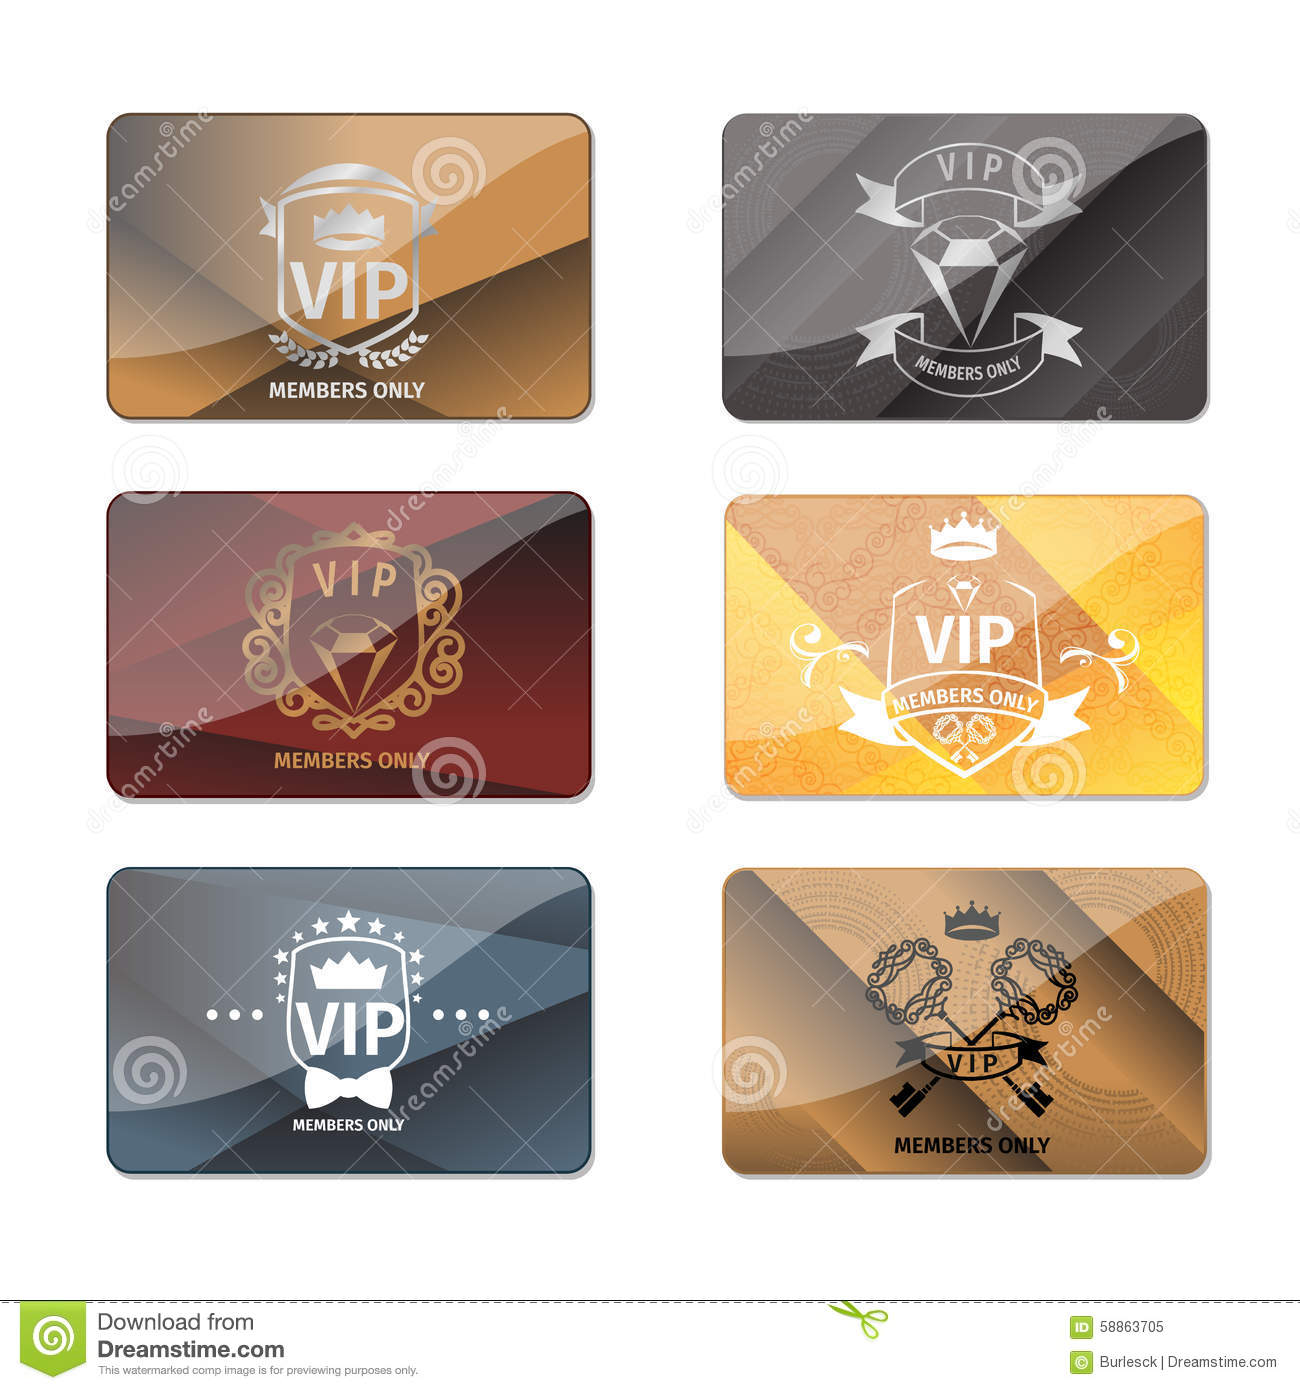 VIP Club Members Only Vector Background Stock Vector Image 60478420